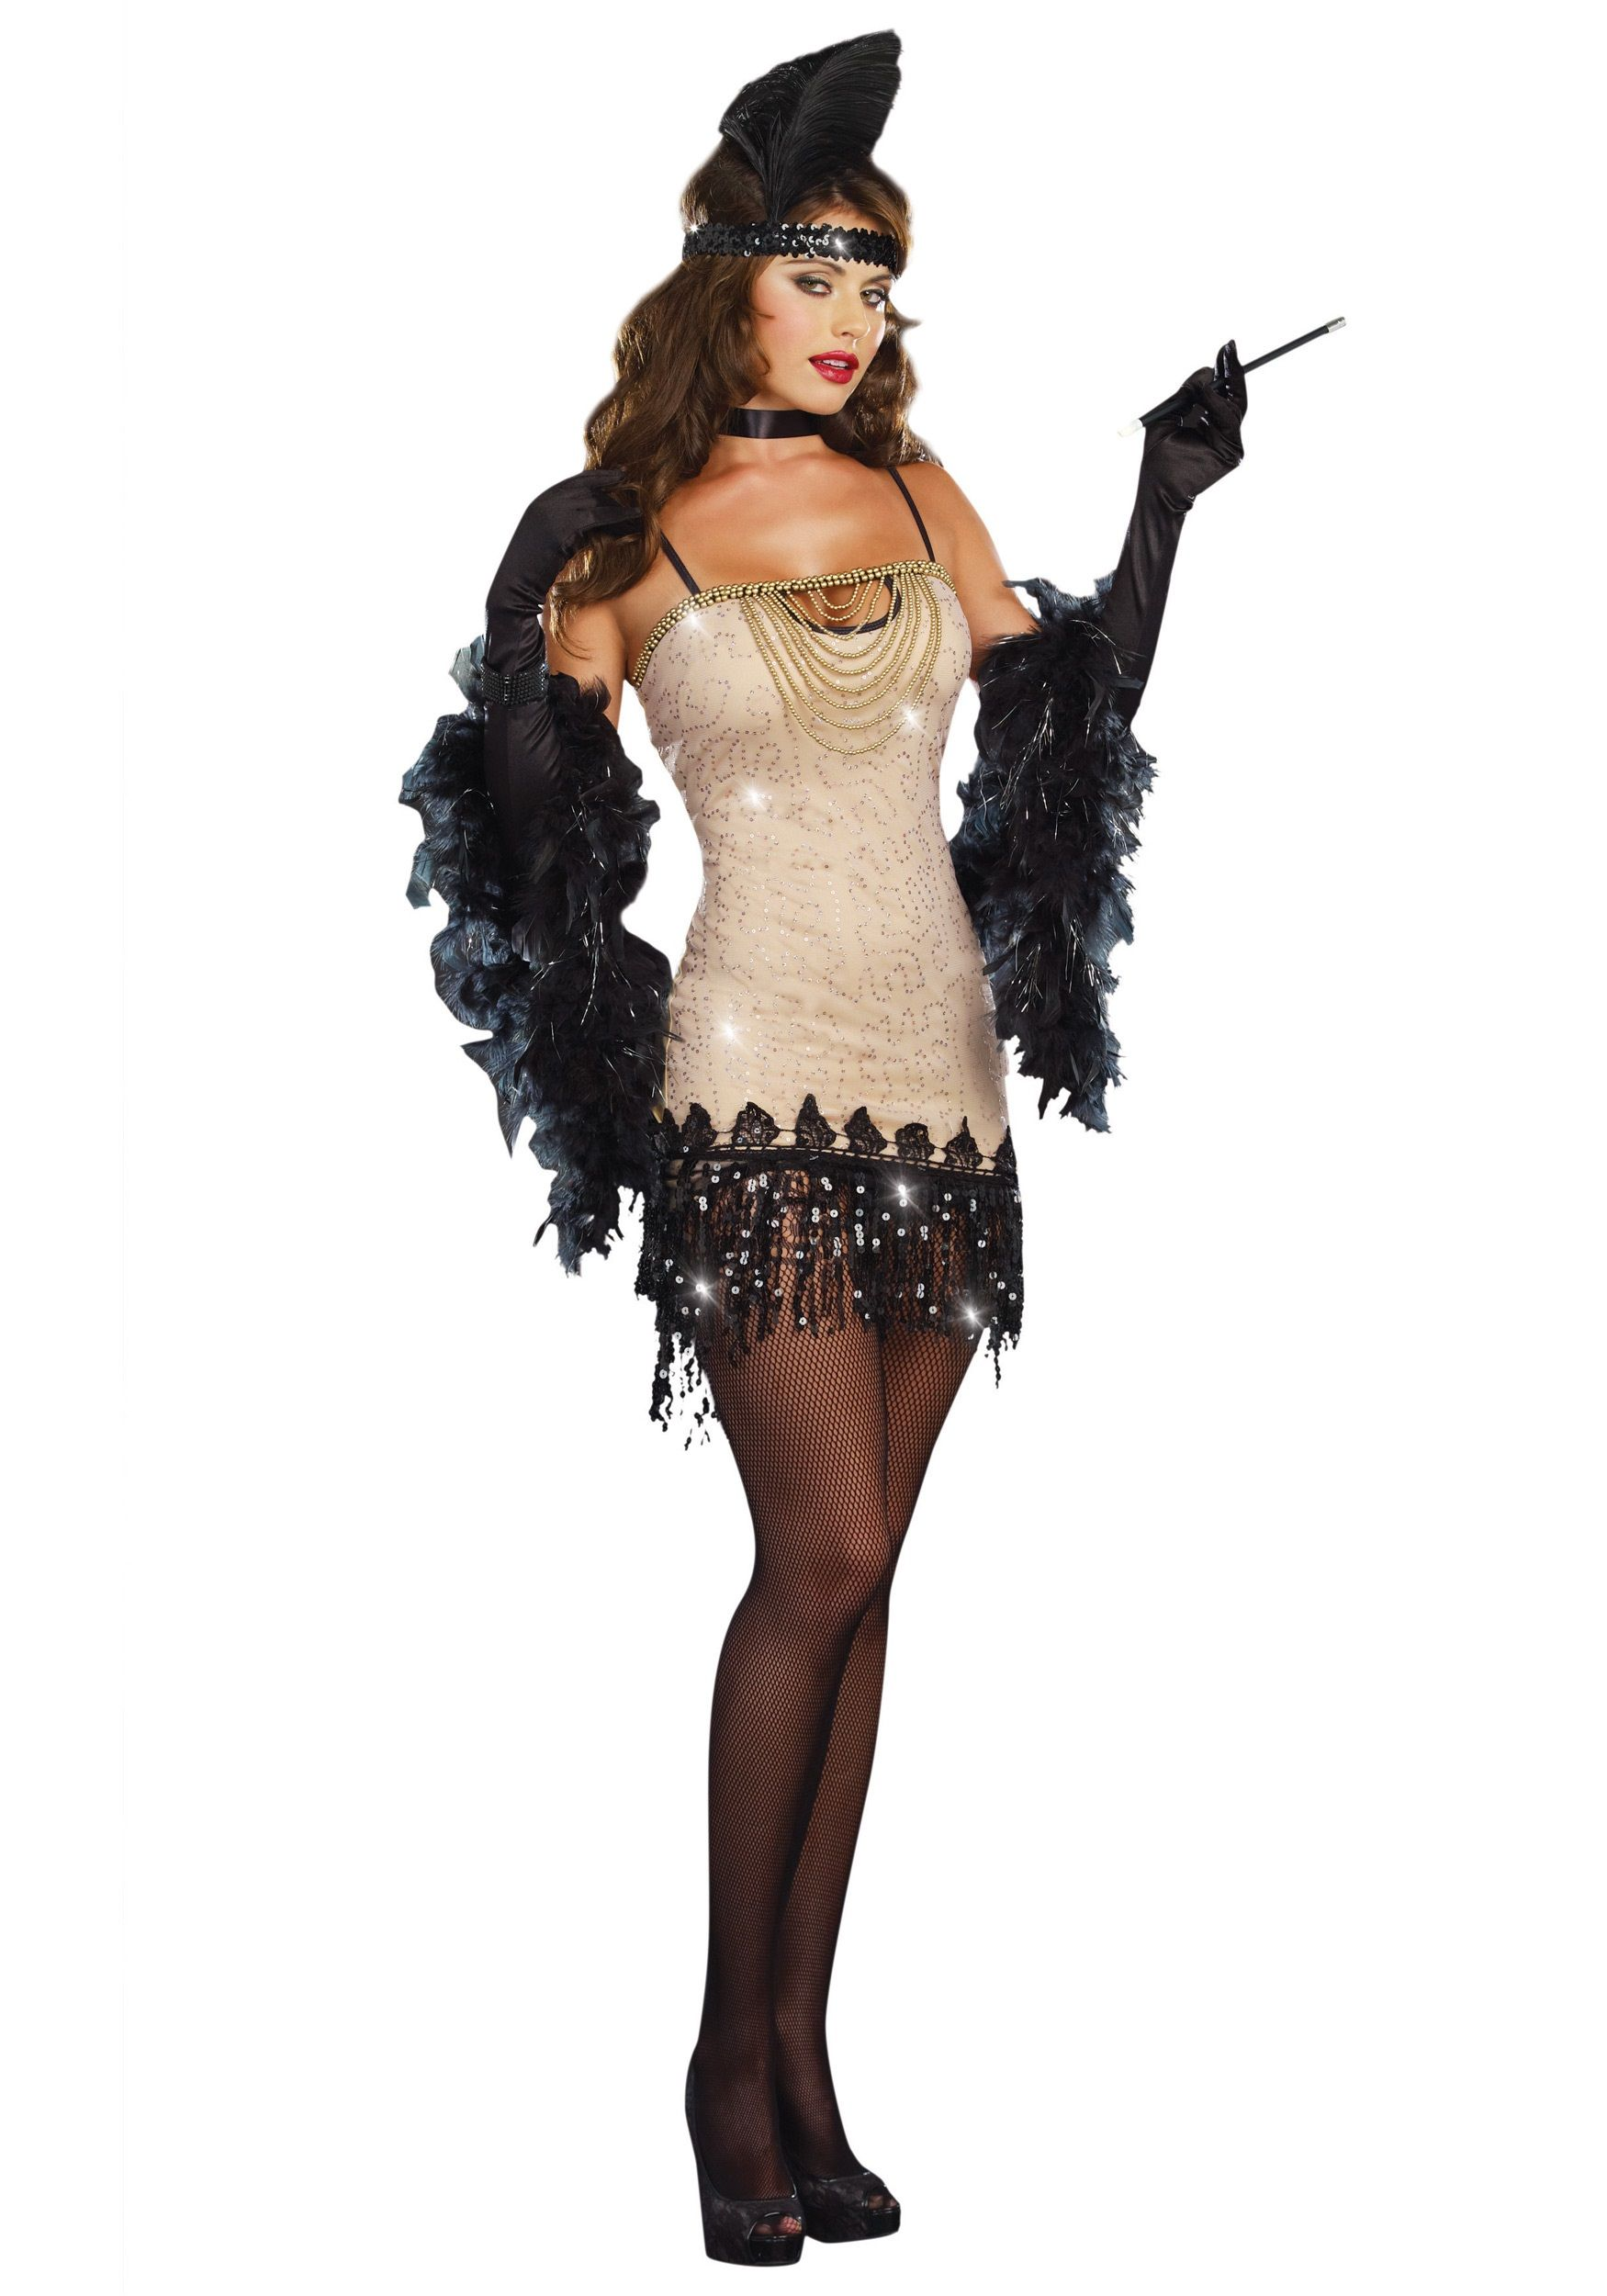 RL8812XX Morris Costumes Women/'s 1920S Dames Like Adult Costume Black Red 1X-2X